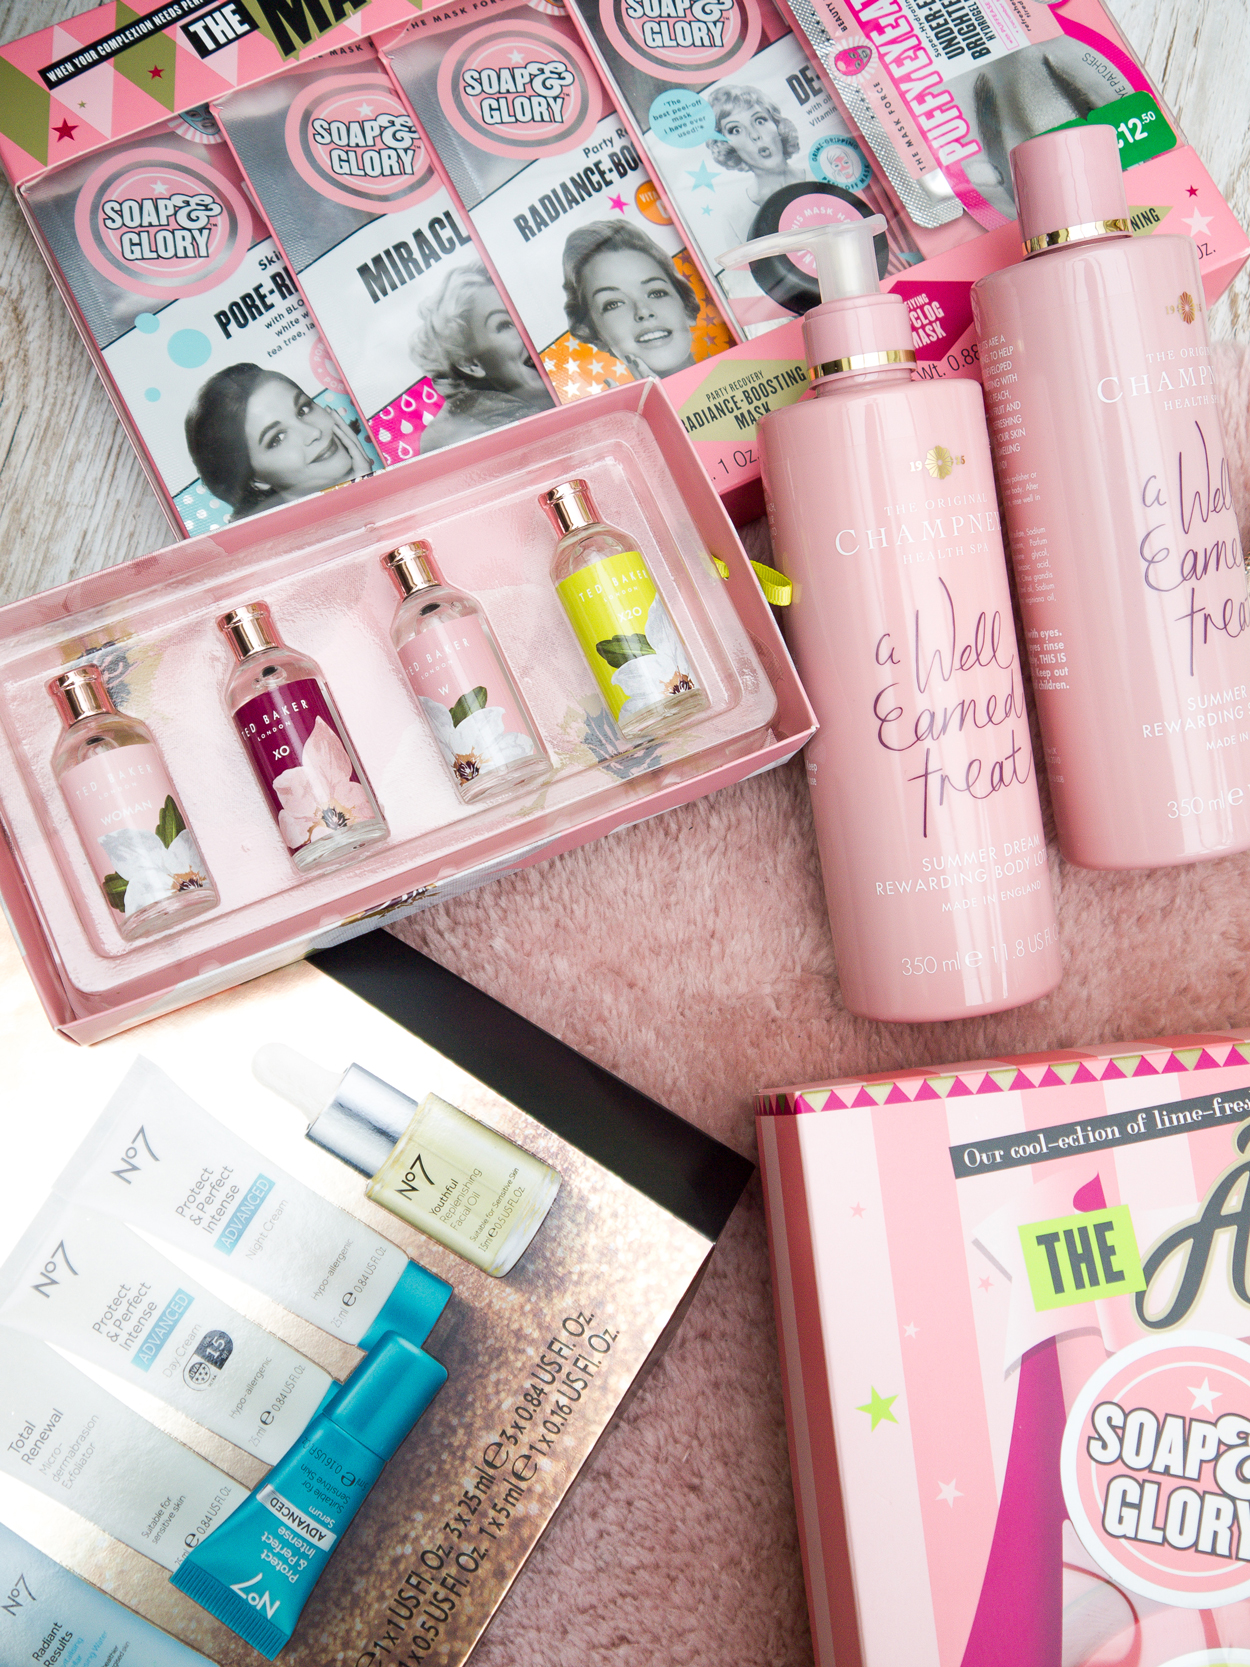 The Beauty Type Career Well Being and Lifestyle, Beauty Blog - Northamptonshire Cambridgeshire blogger - Christmas January Sales Beauty Haul from Boots including No7, Soap and Glory and Champneys, Ted Baker.